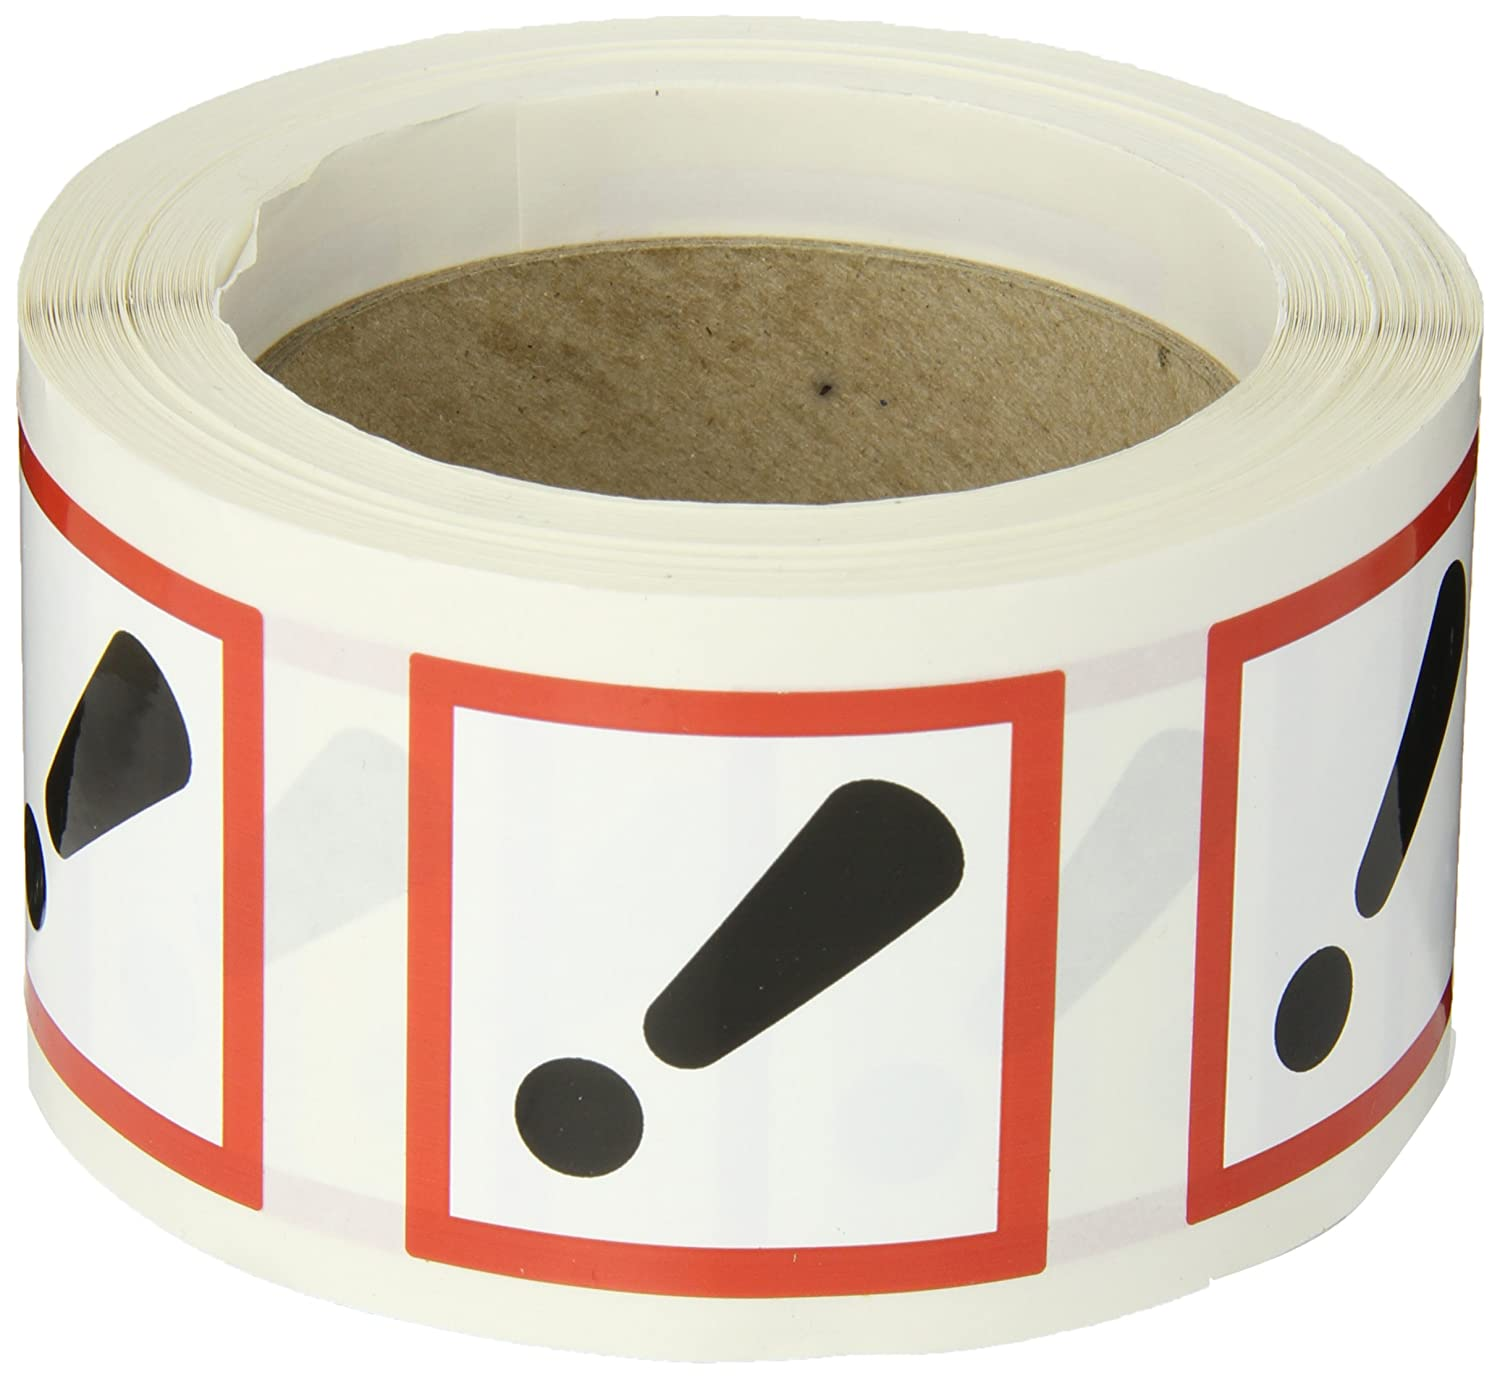 Adhesive-Poly Accuform LZH617EV2 GHS Pictogram Label Roll of 250 2 Length x 2 Width Red//Black on White EXCLAMATION MARK